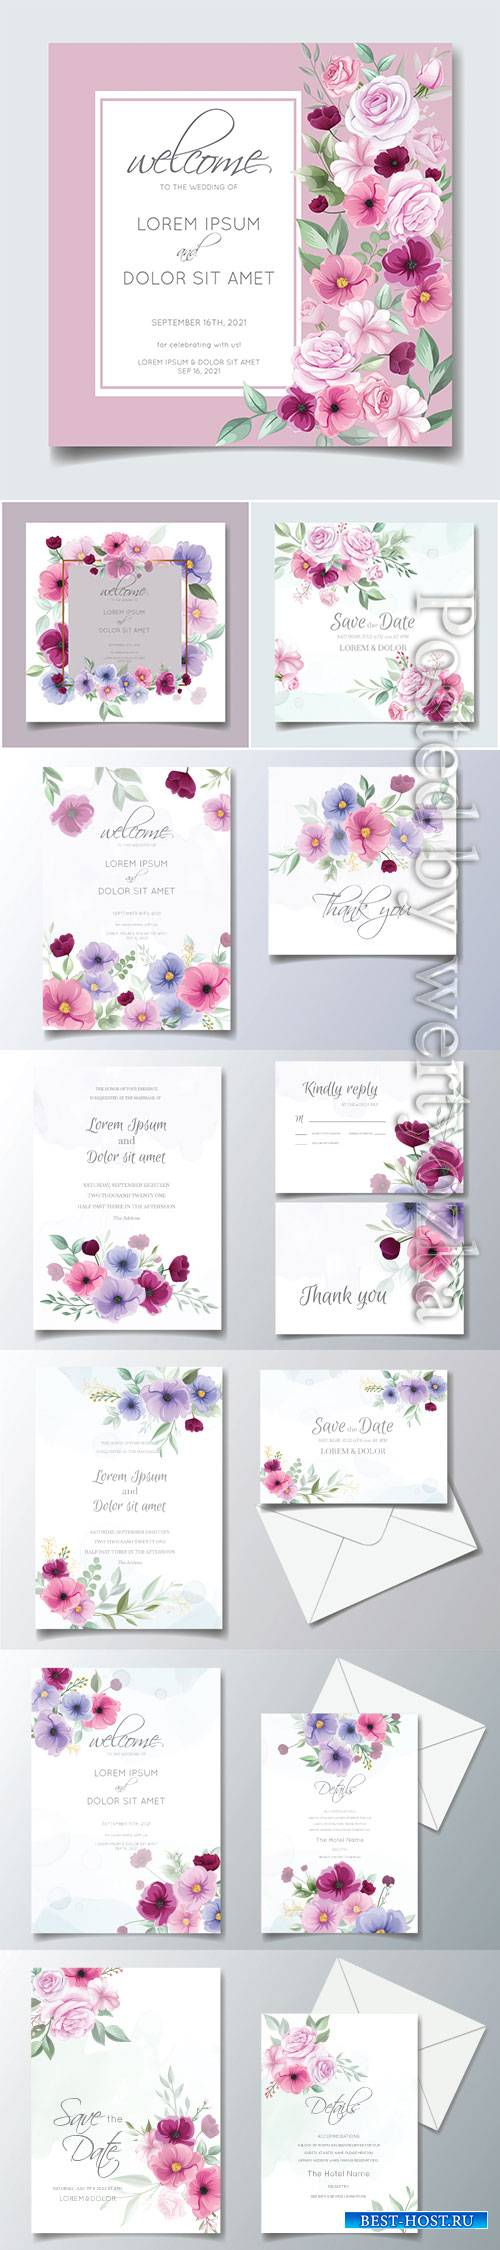 Colorful hand drawn floral wedding invitation card